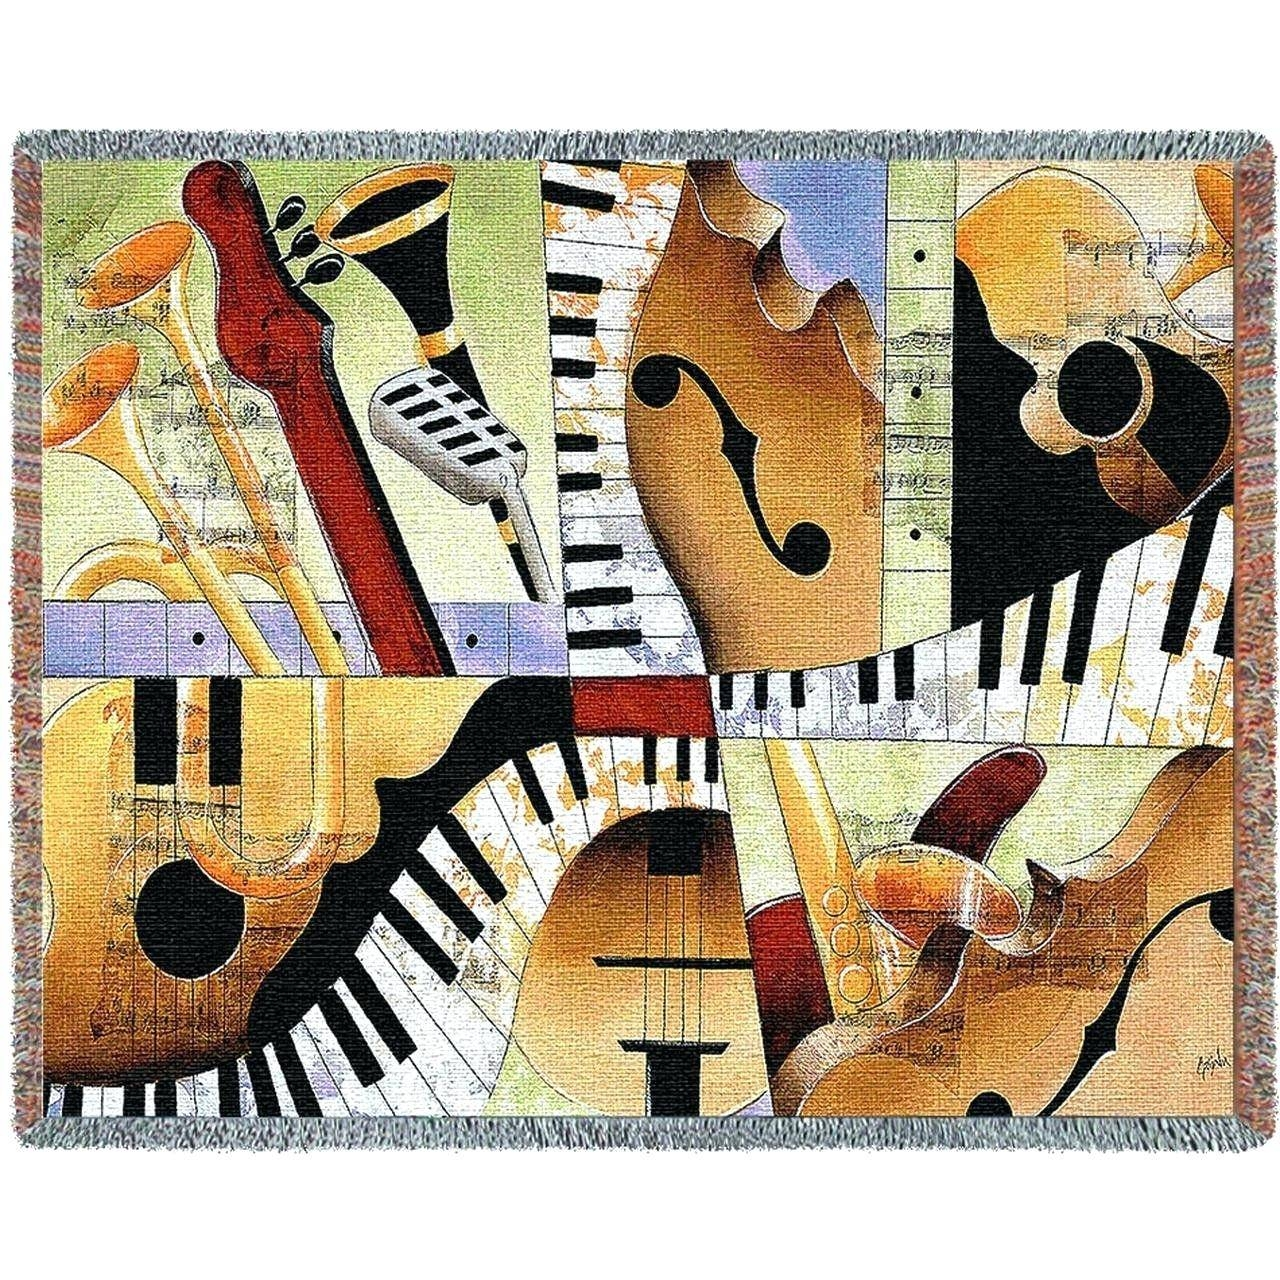 Enchanting Music Metal Wall Art Canada Cool Jazz Wall Sculpture With Regard To Most Current Jazz It Up Metal Wall Art (View 7 of 20)